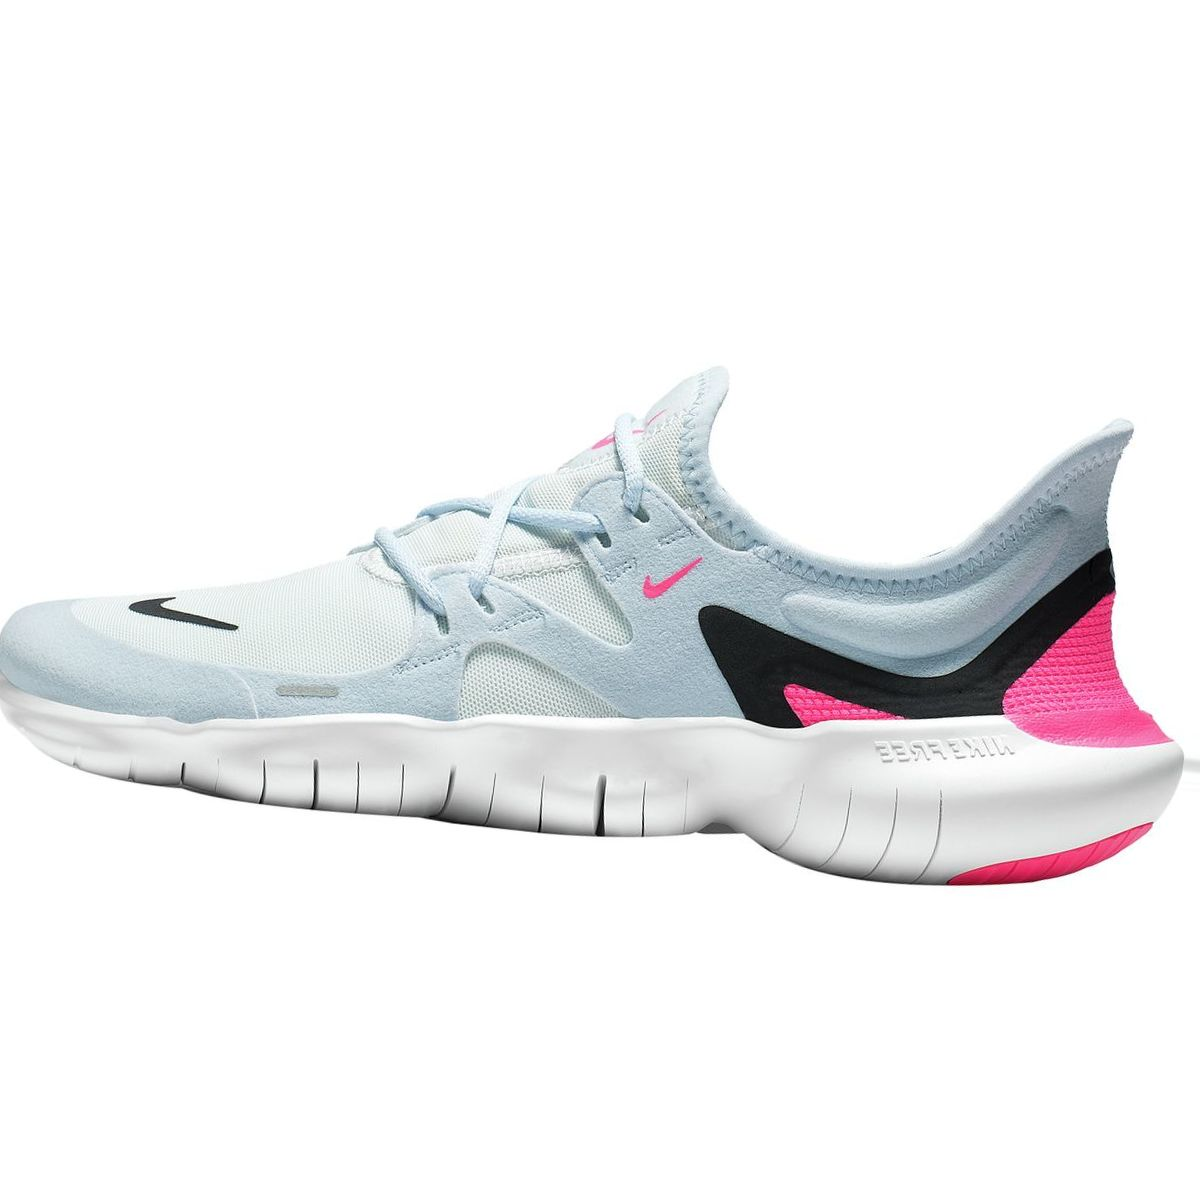 Nike Free Run 5.0 Running Shoe - Women's